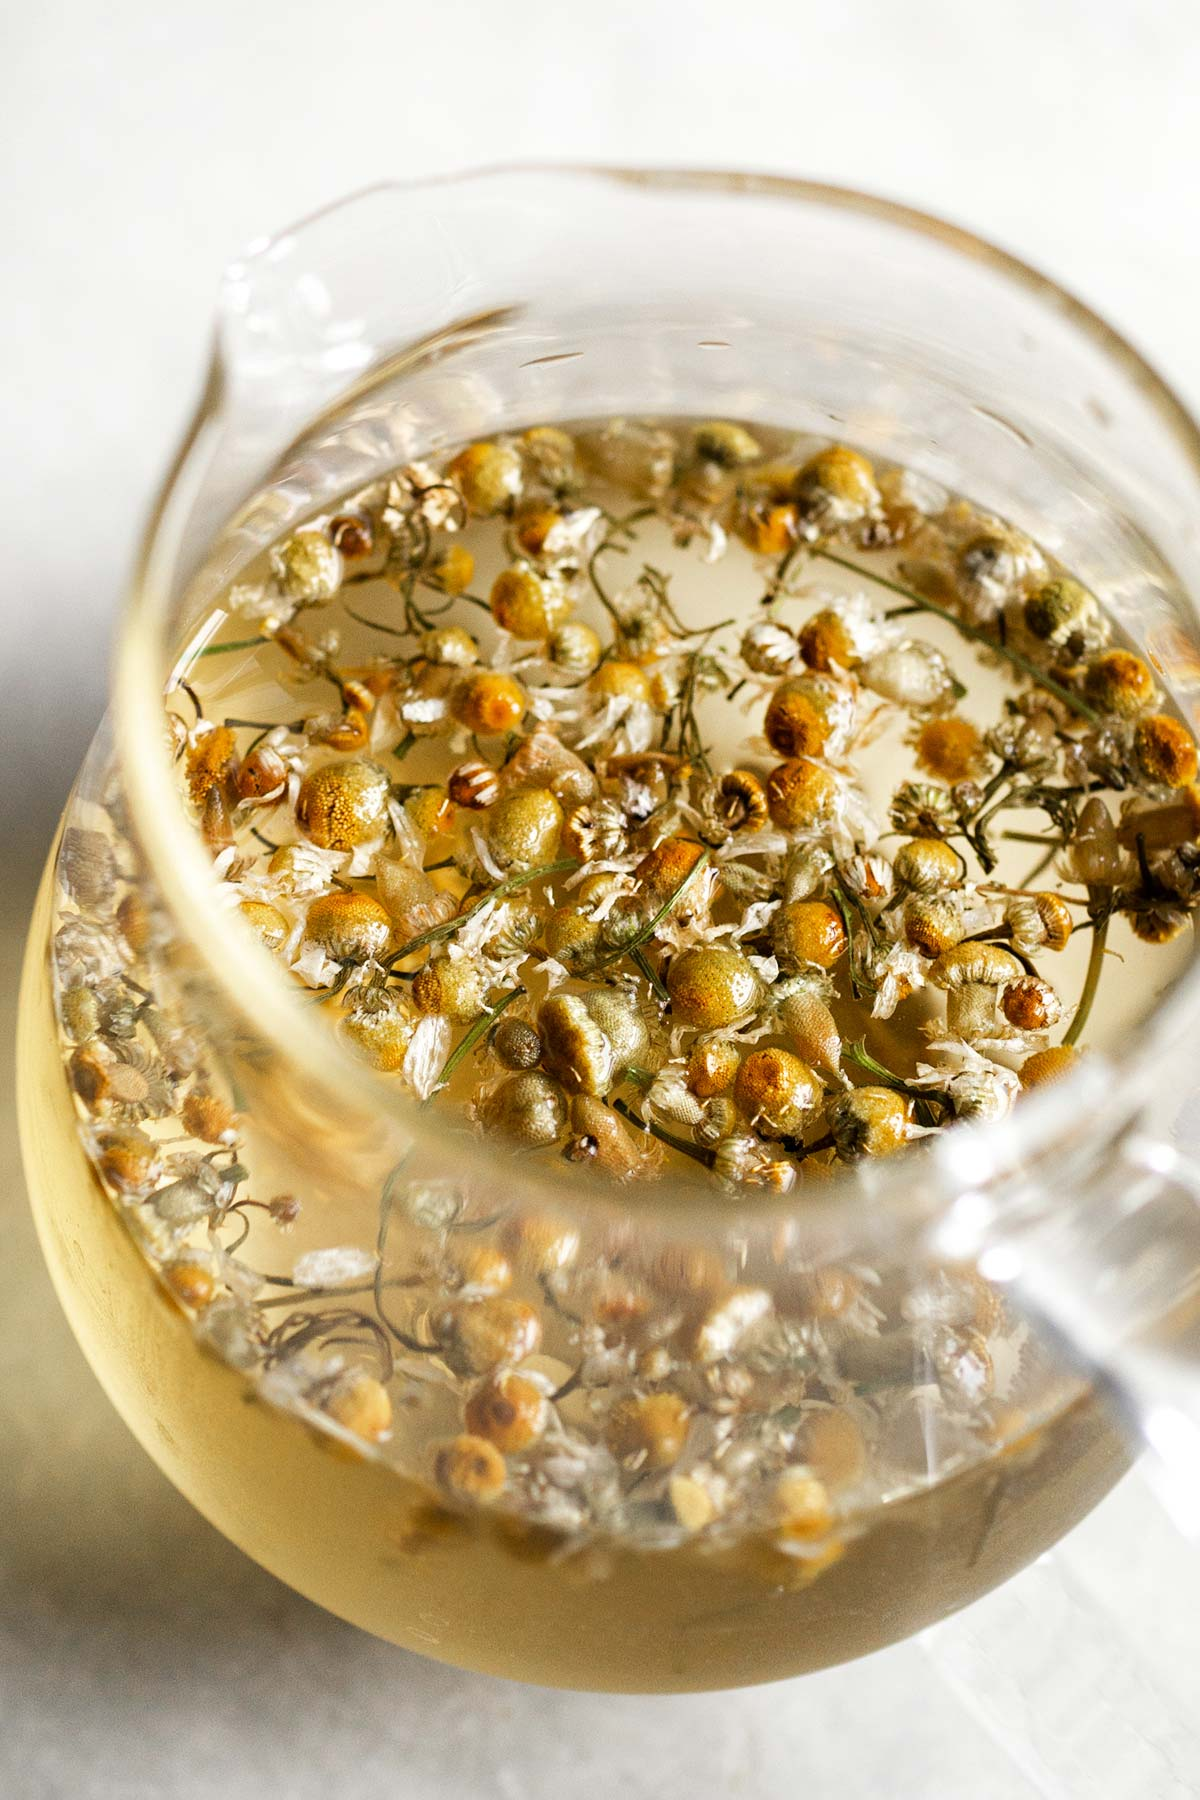 Steeping chamomile flowers in a teapot with hot water.